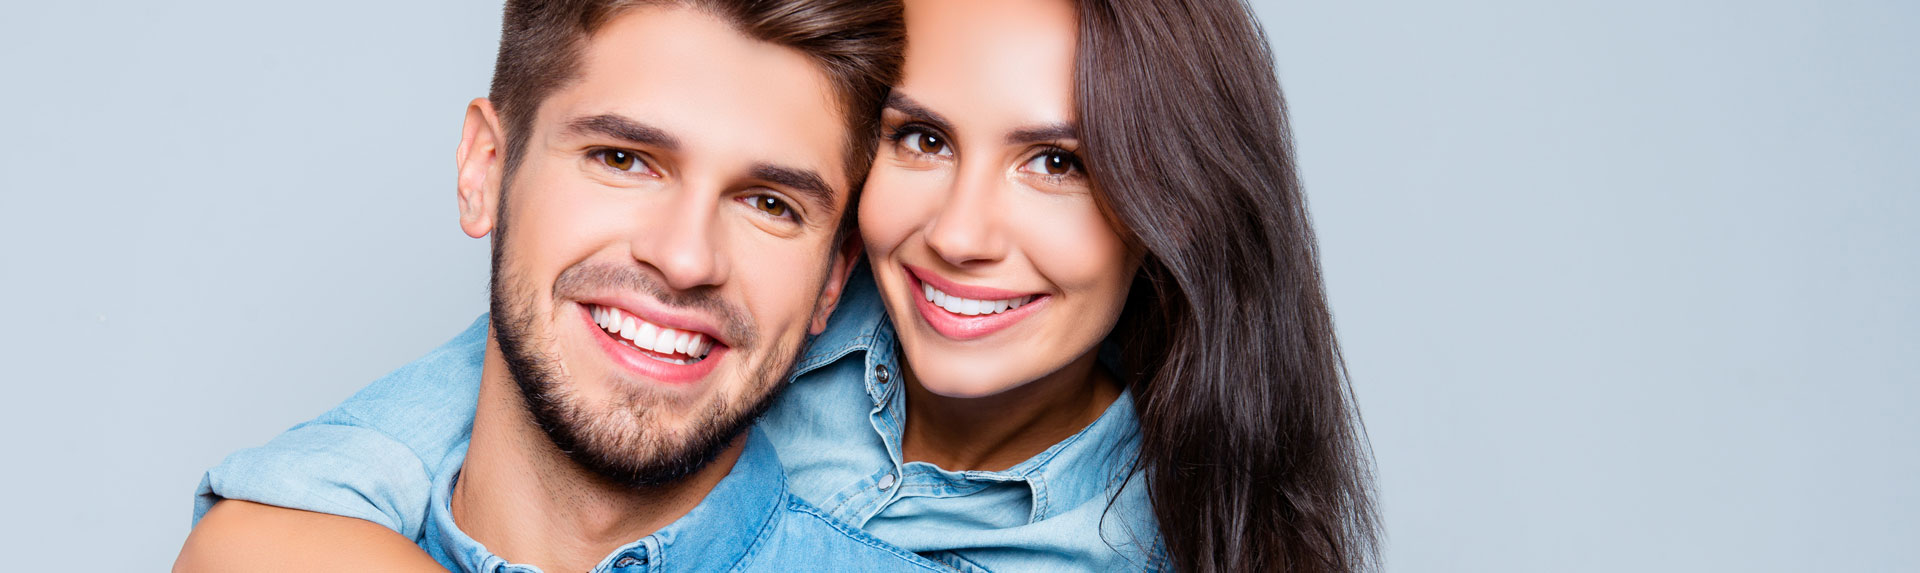 Smiling young couple at blue background